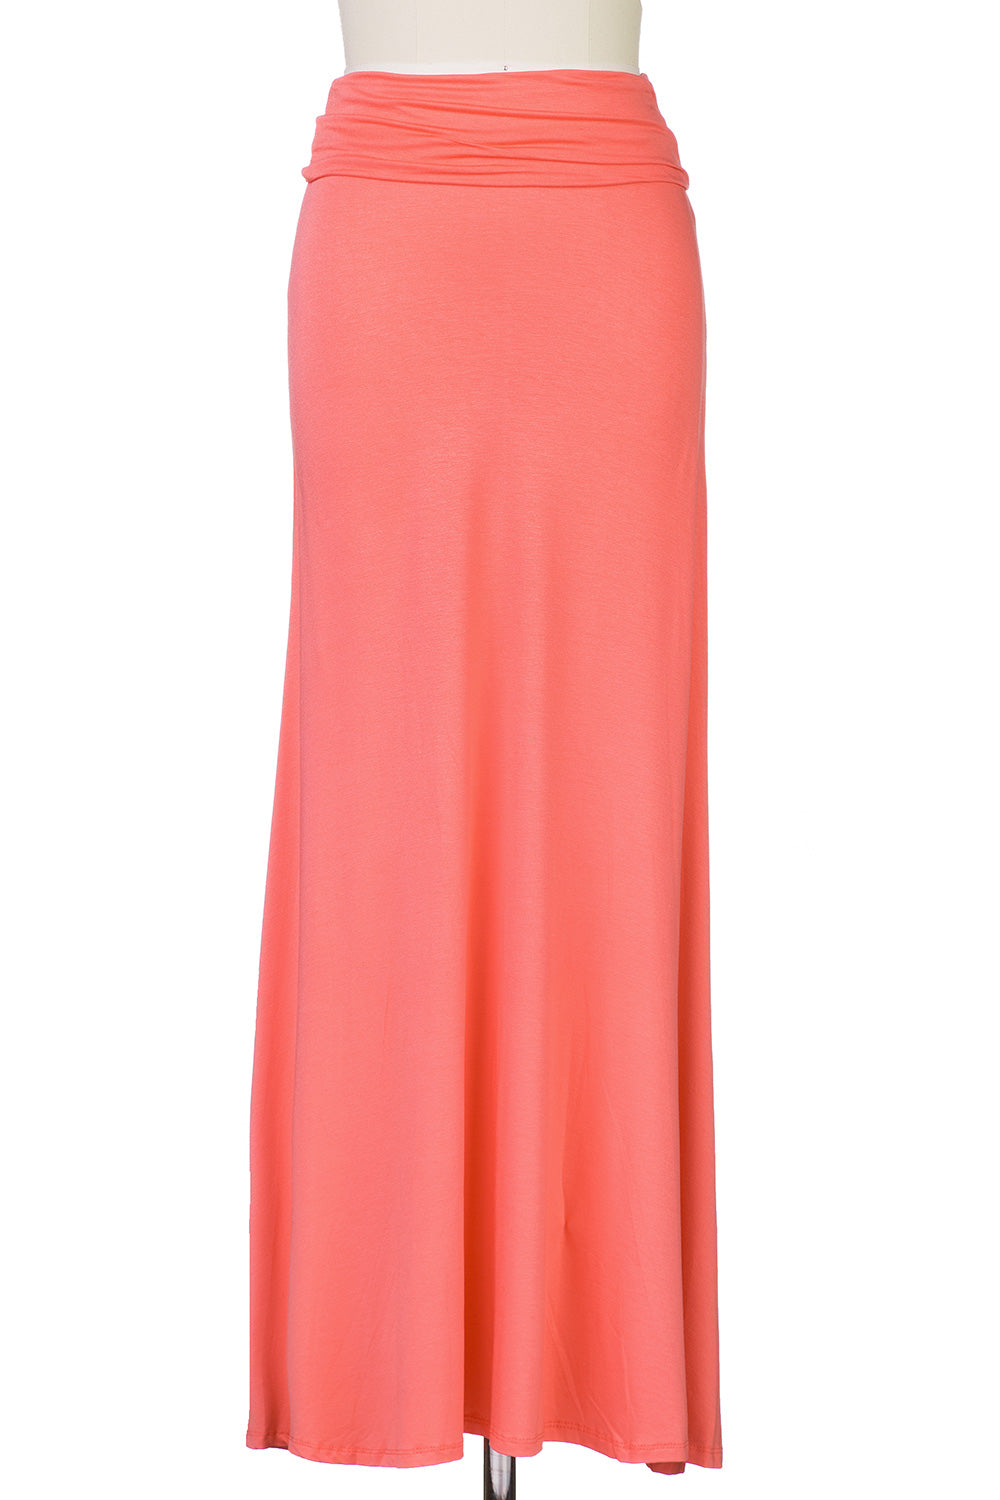 Type 1 Coral Maxi Skirt